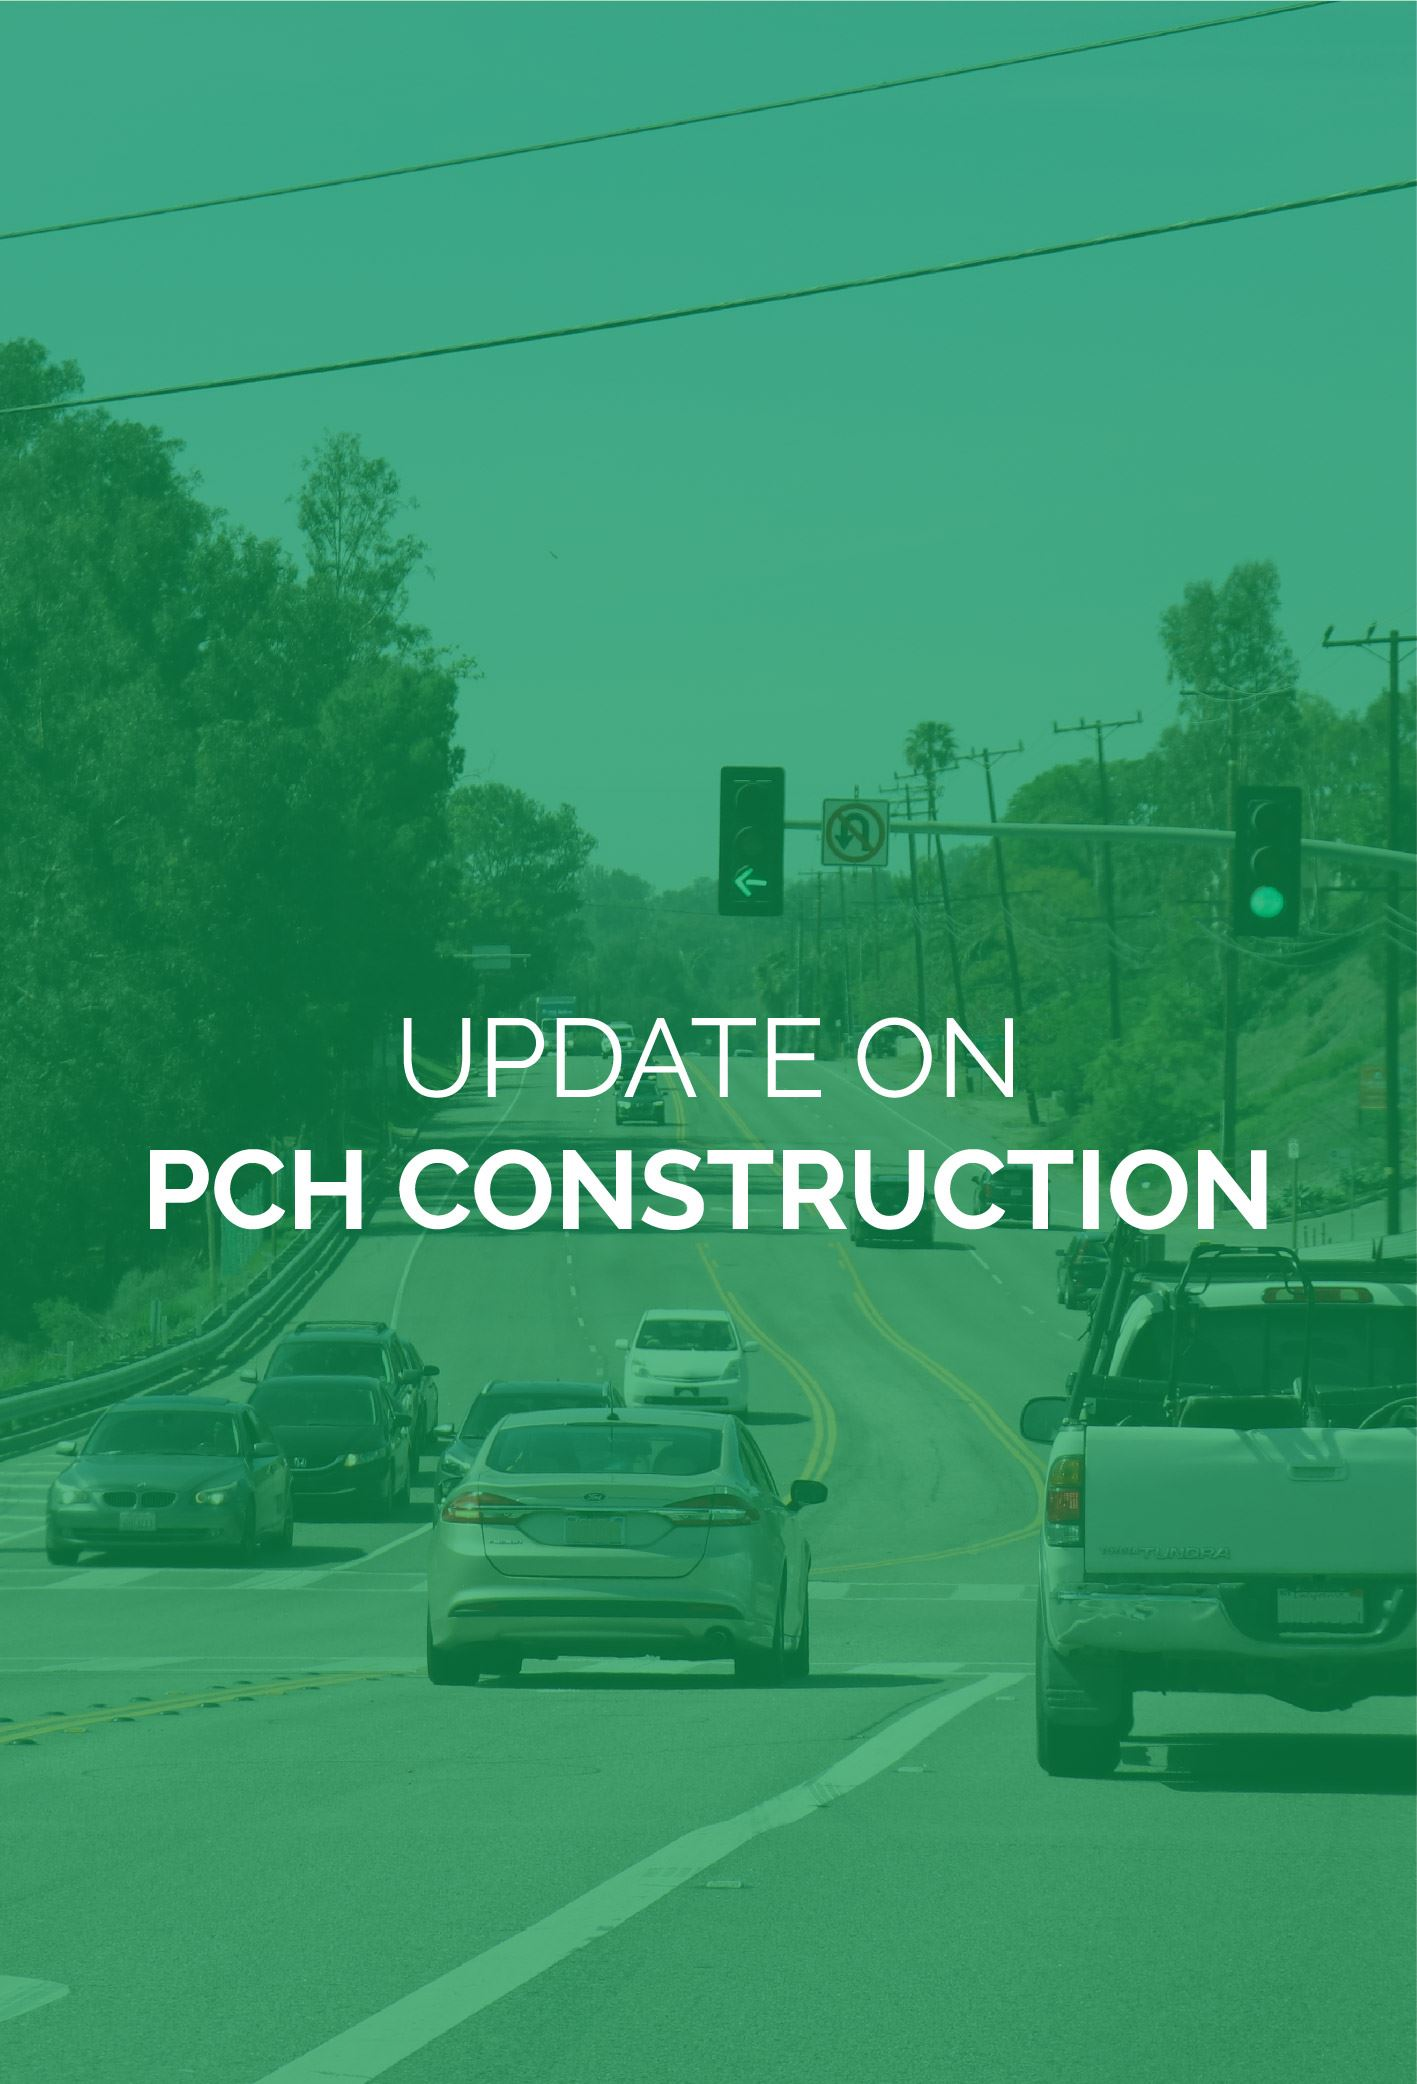 PCH Construction Updates